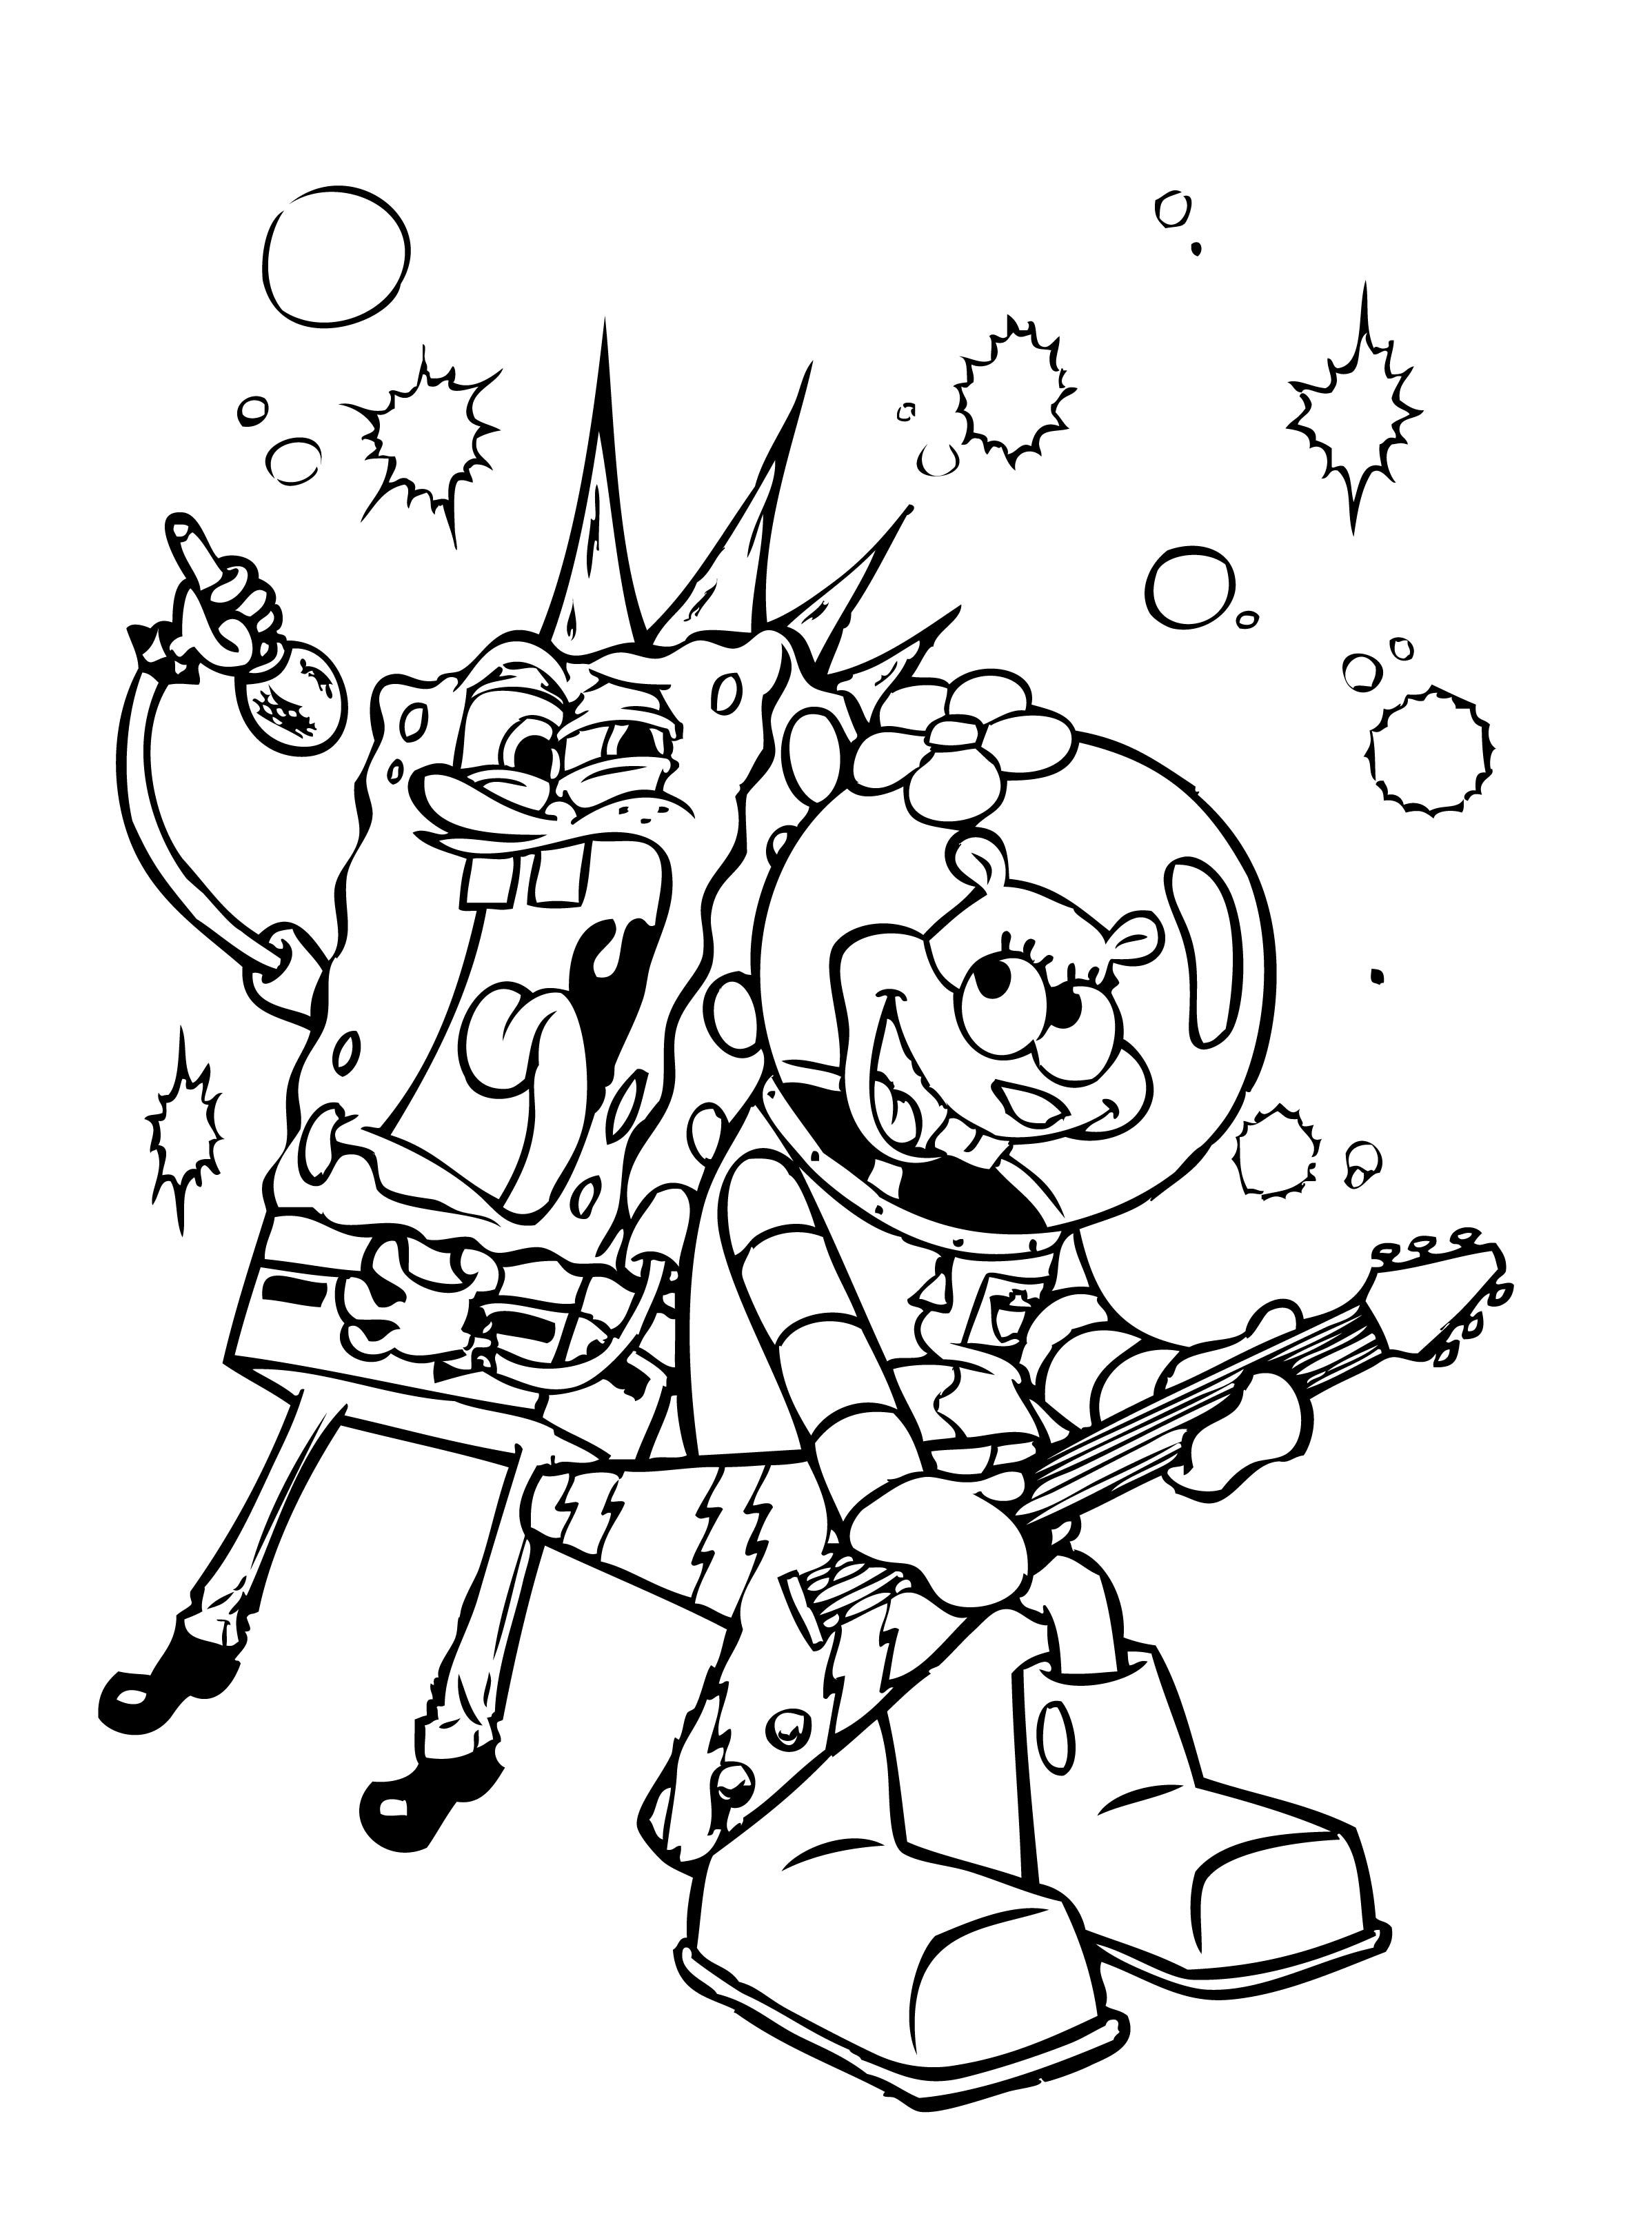 Spongebob Sing Coloring Pages HD Wallpaper Spongebob Pictures To ...